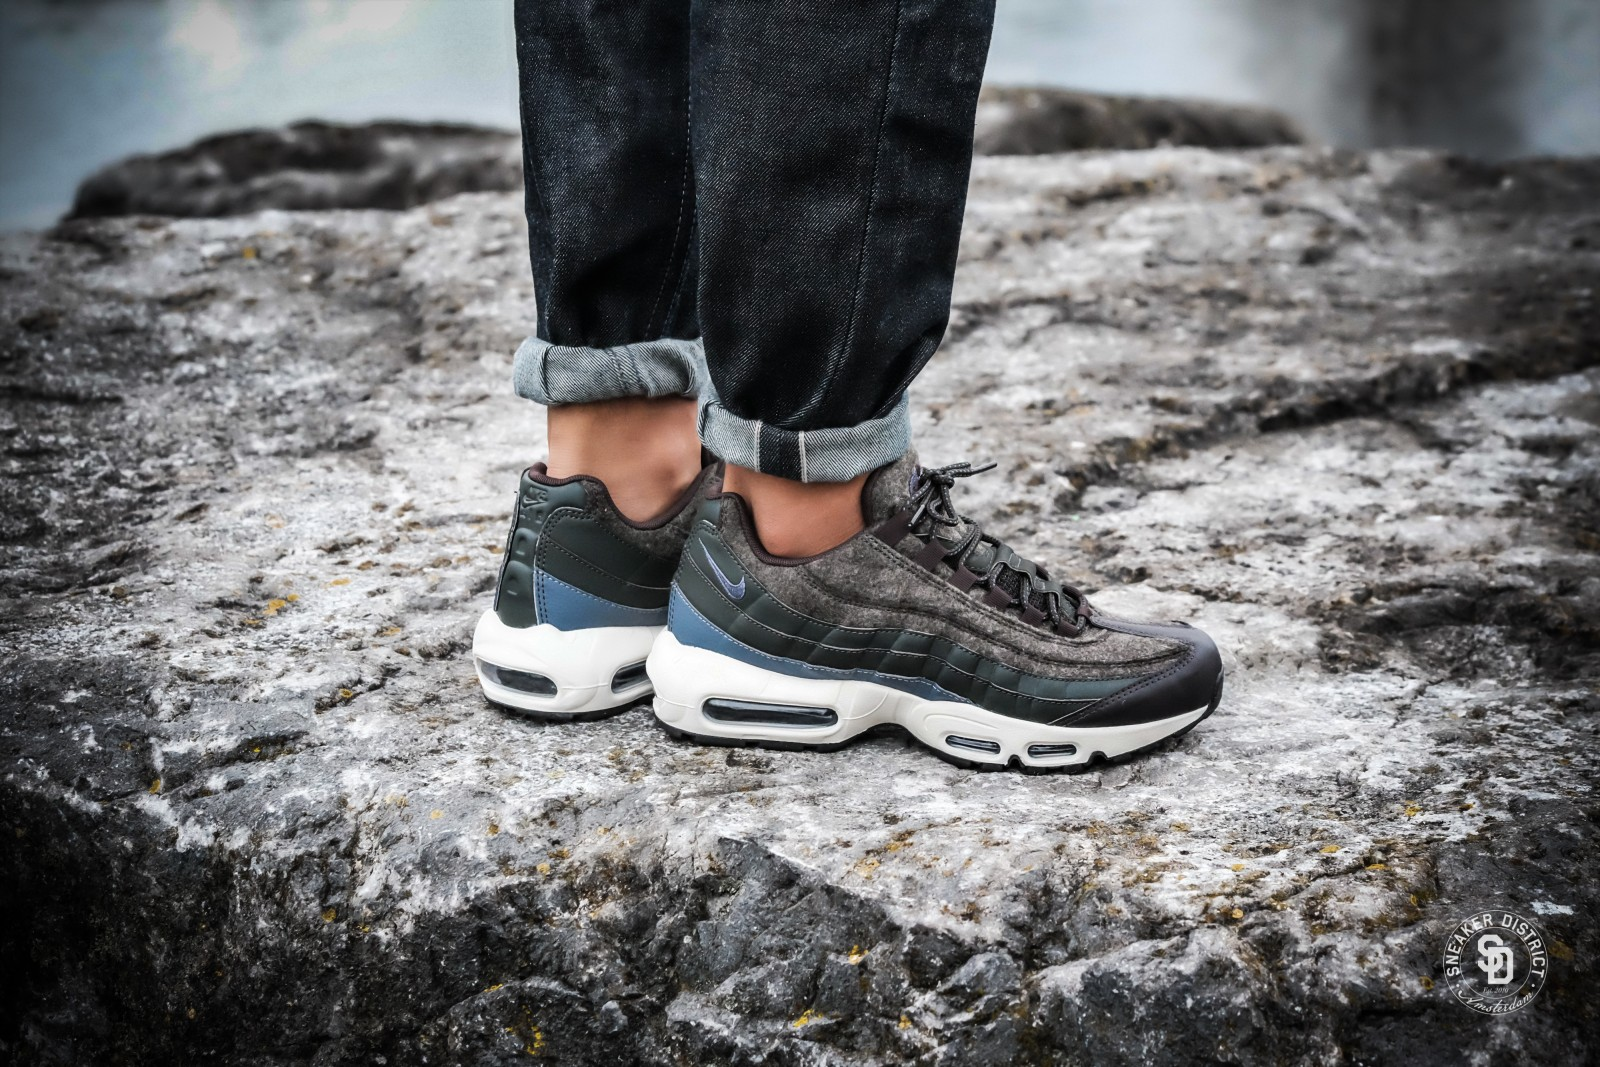 Nike Air Max 95 Premium SequoiaLight Carbon Velvet Brown 538416 300